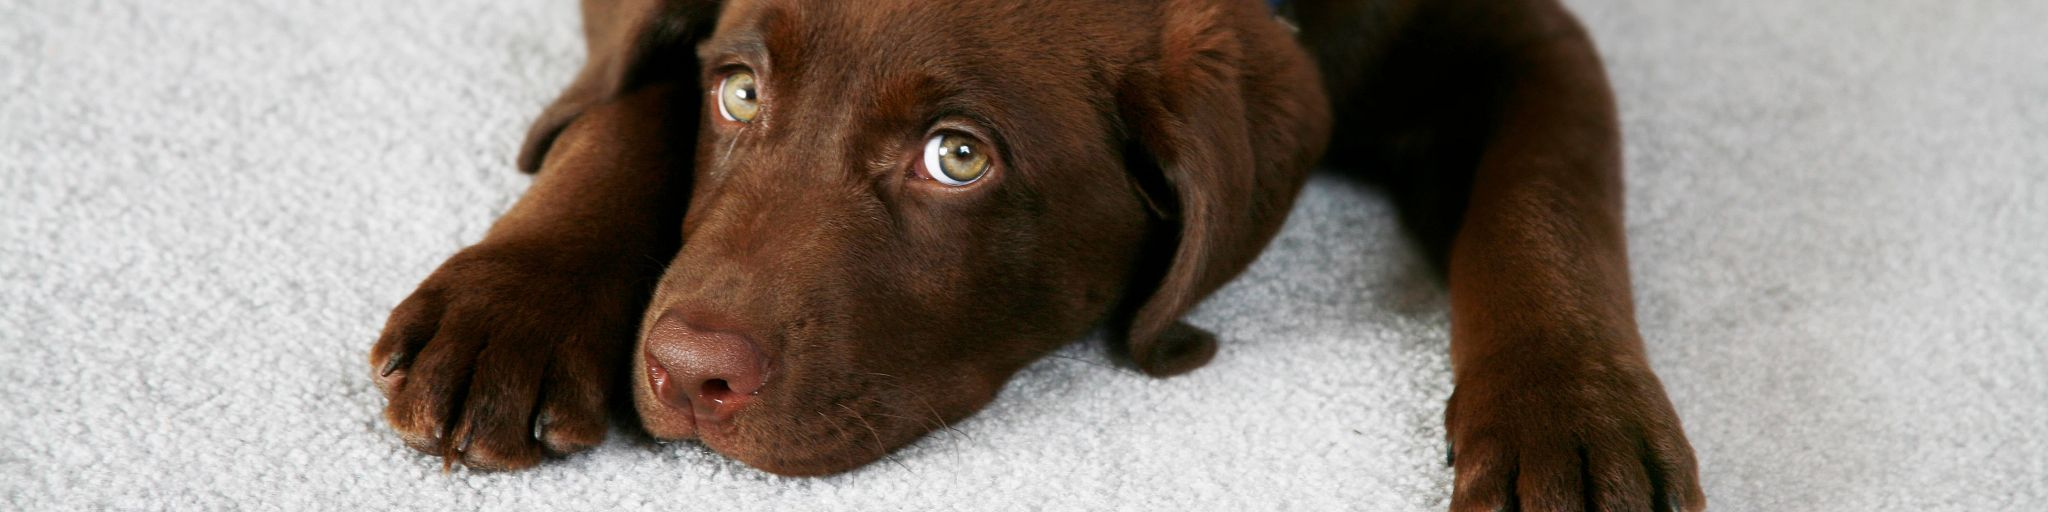 Chocolate Dog Relaxed On Carpet